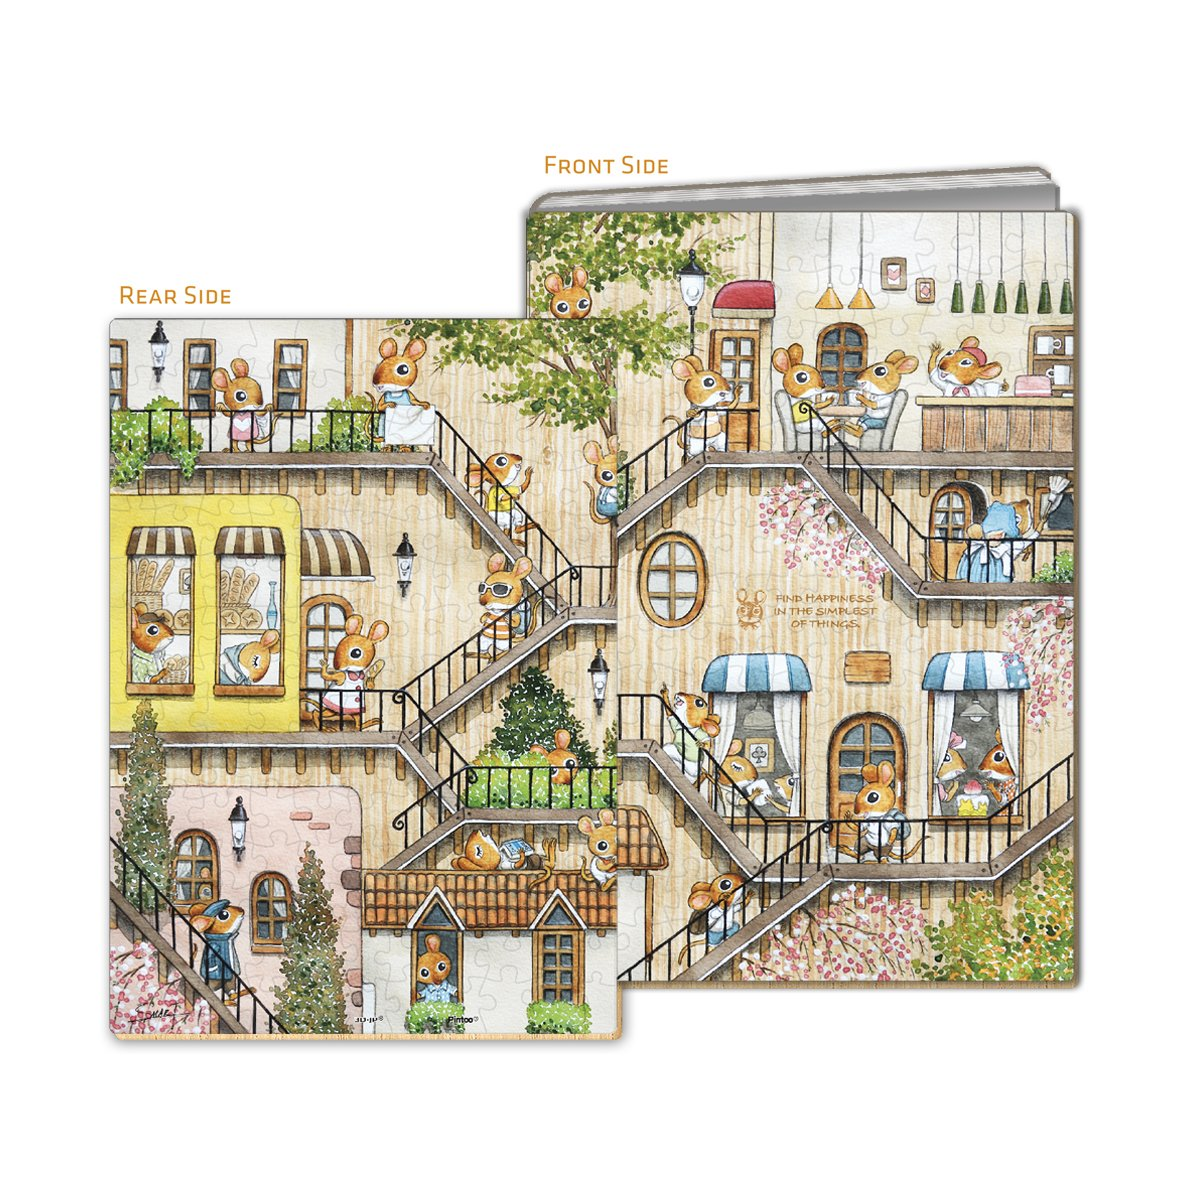 pintoo-puzzle-cover-the-tree-house-329-teile-puzzle-pintoo-y1042